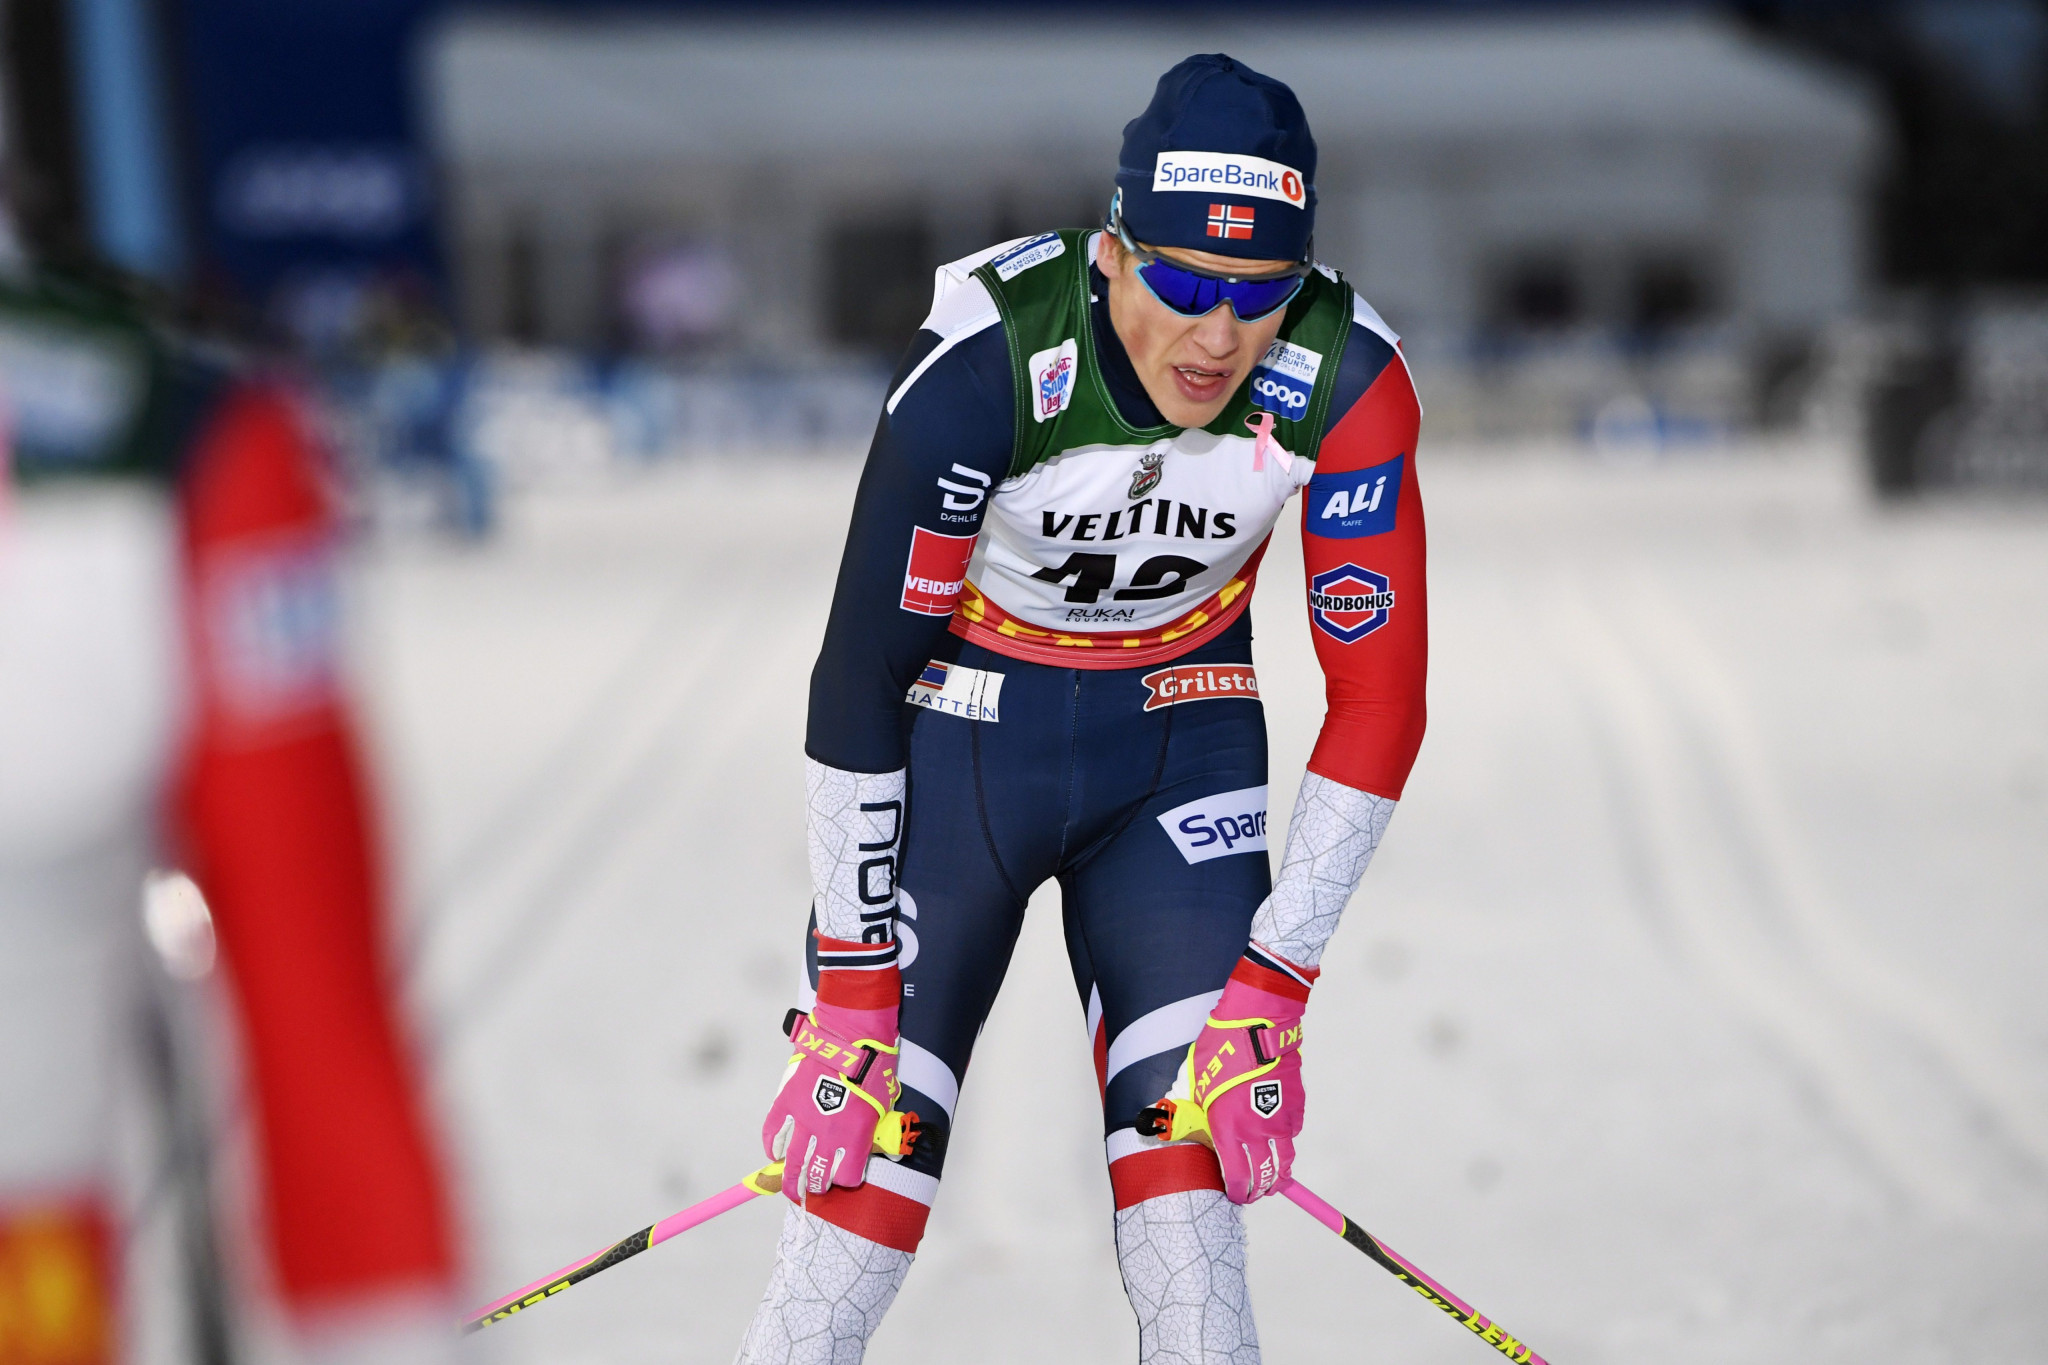 Sprint action to continue Tour de Ski in Val Müstair